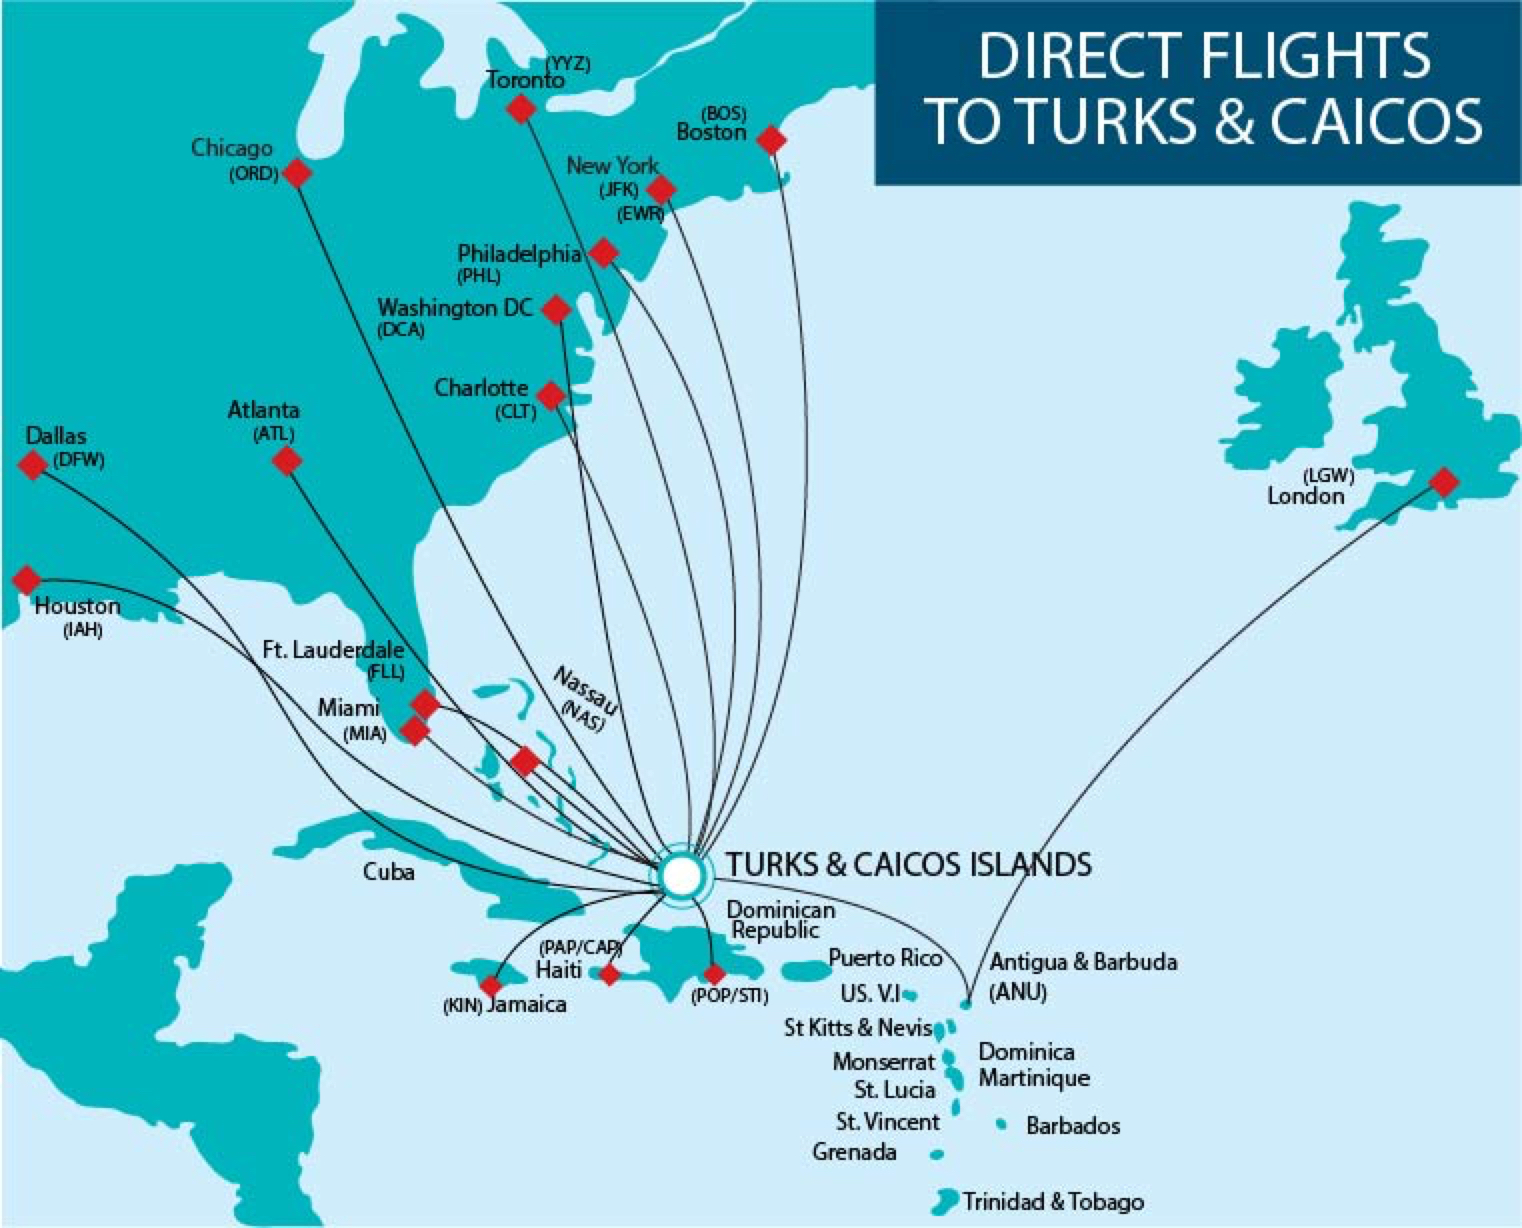 Getting To Turks & Caicos